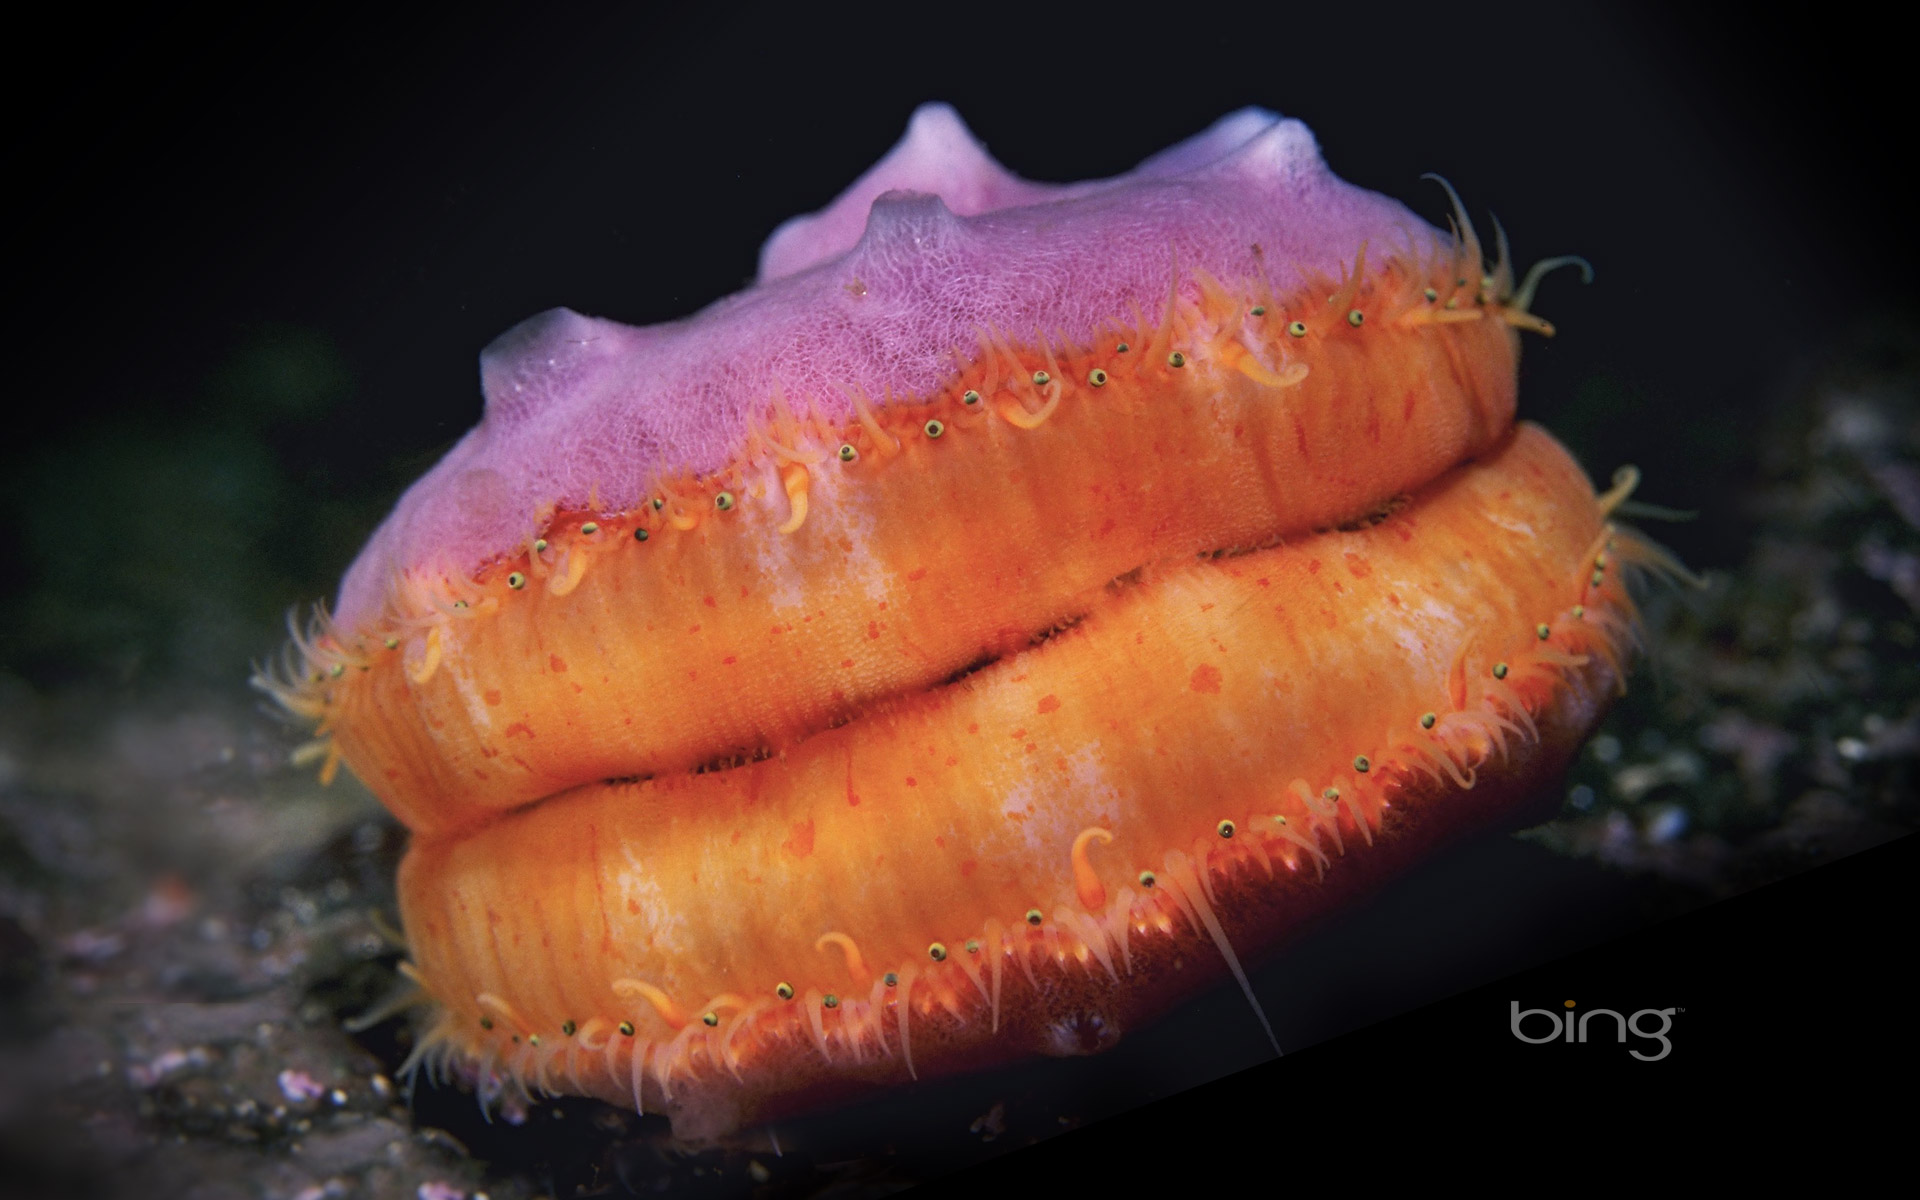 A Pacific pink scallop in the Pacific Ocean, British Columbia, Canada